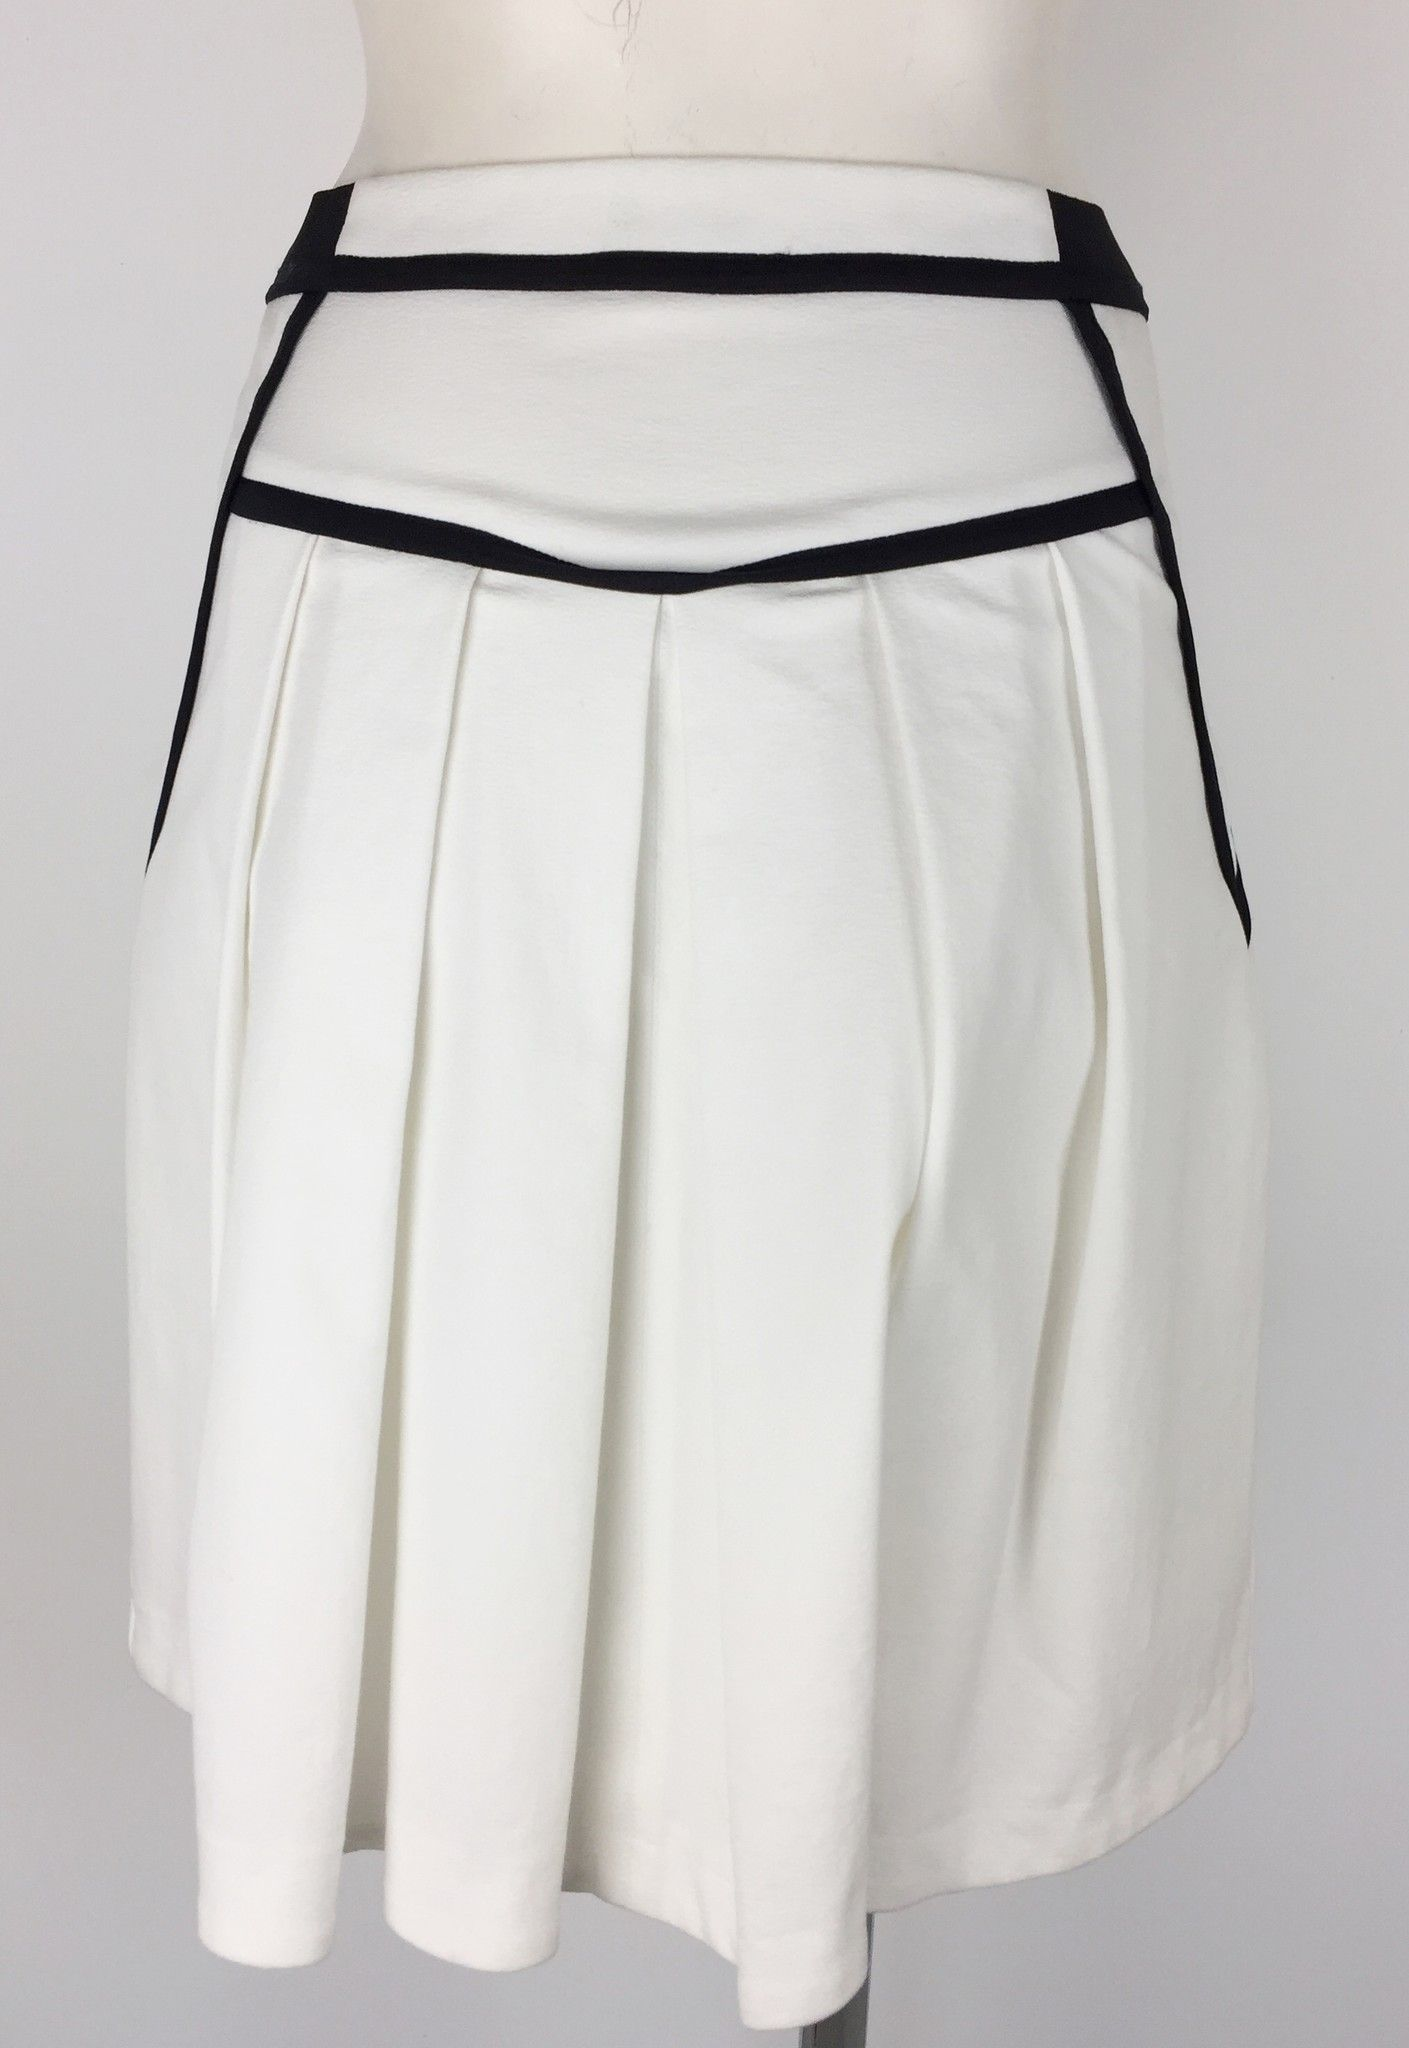 Atos Lombardini Flared Skirt with Black Inserts Cod.TQ1191